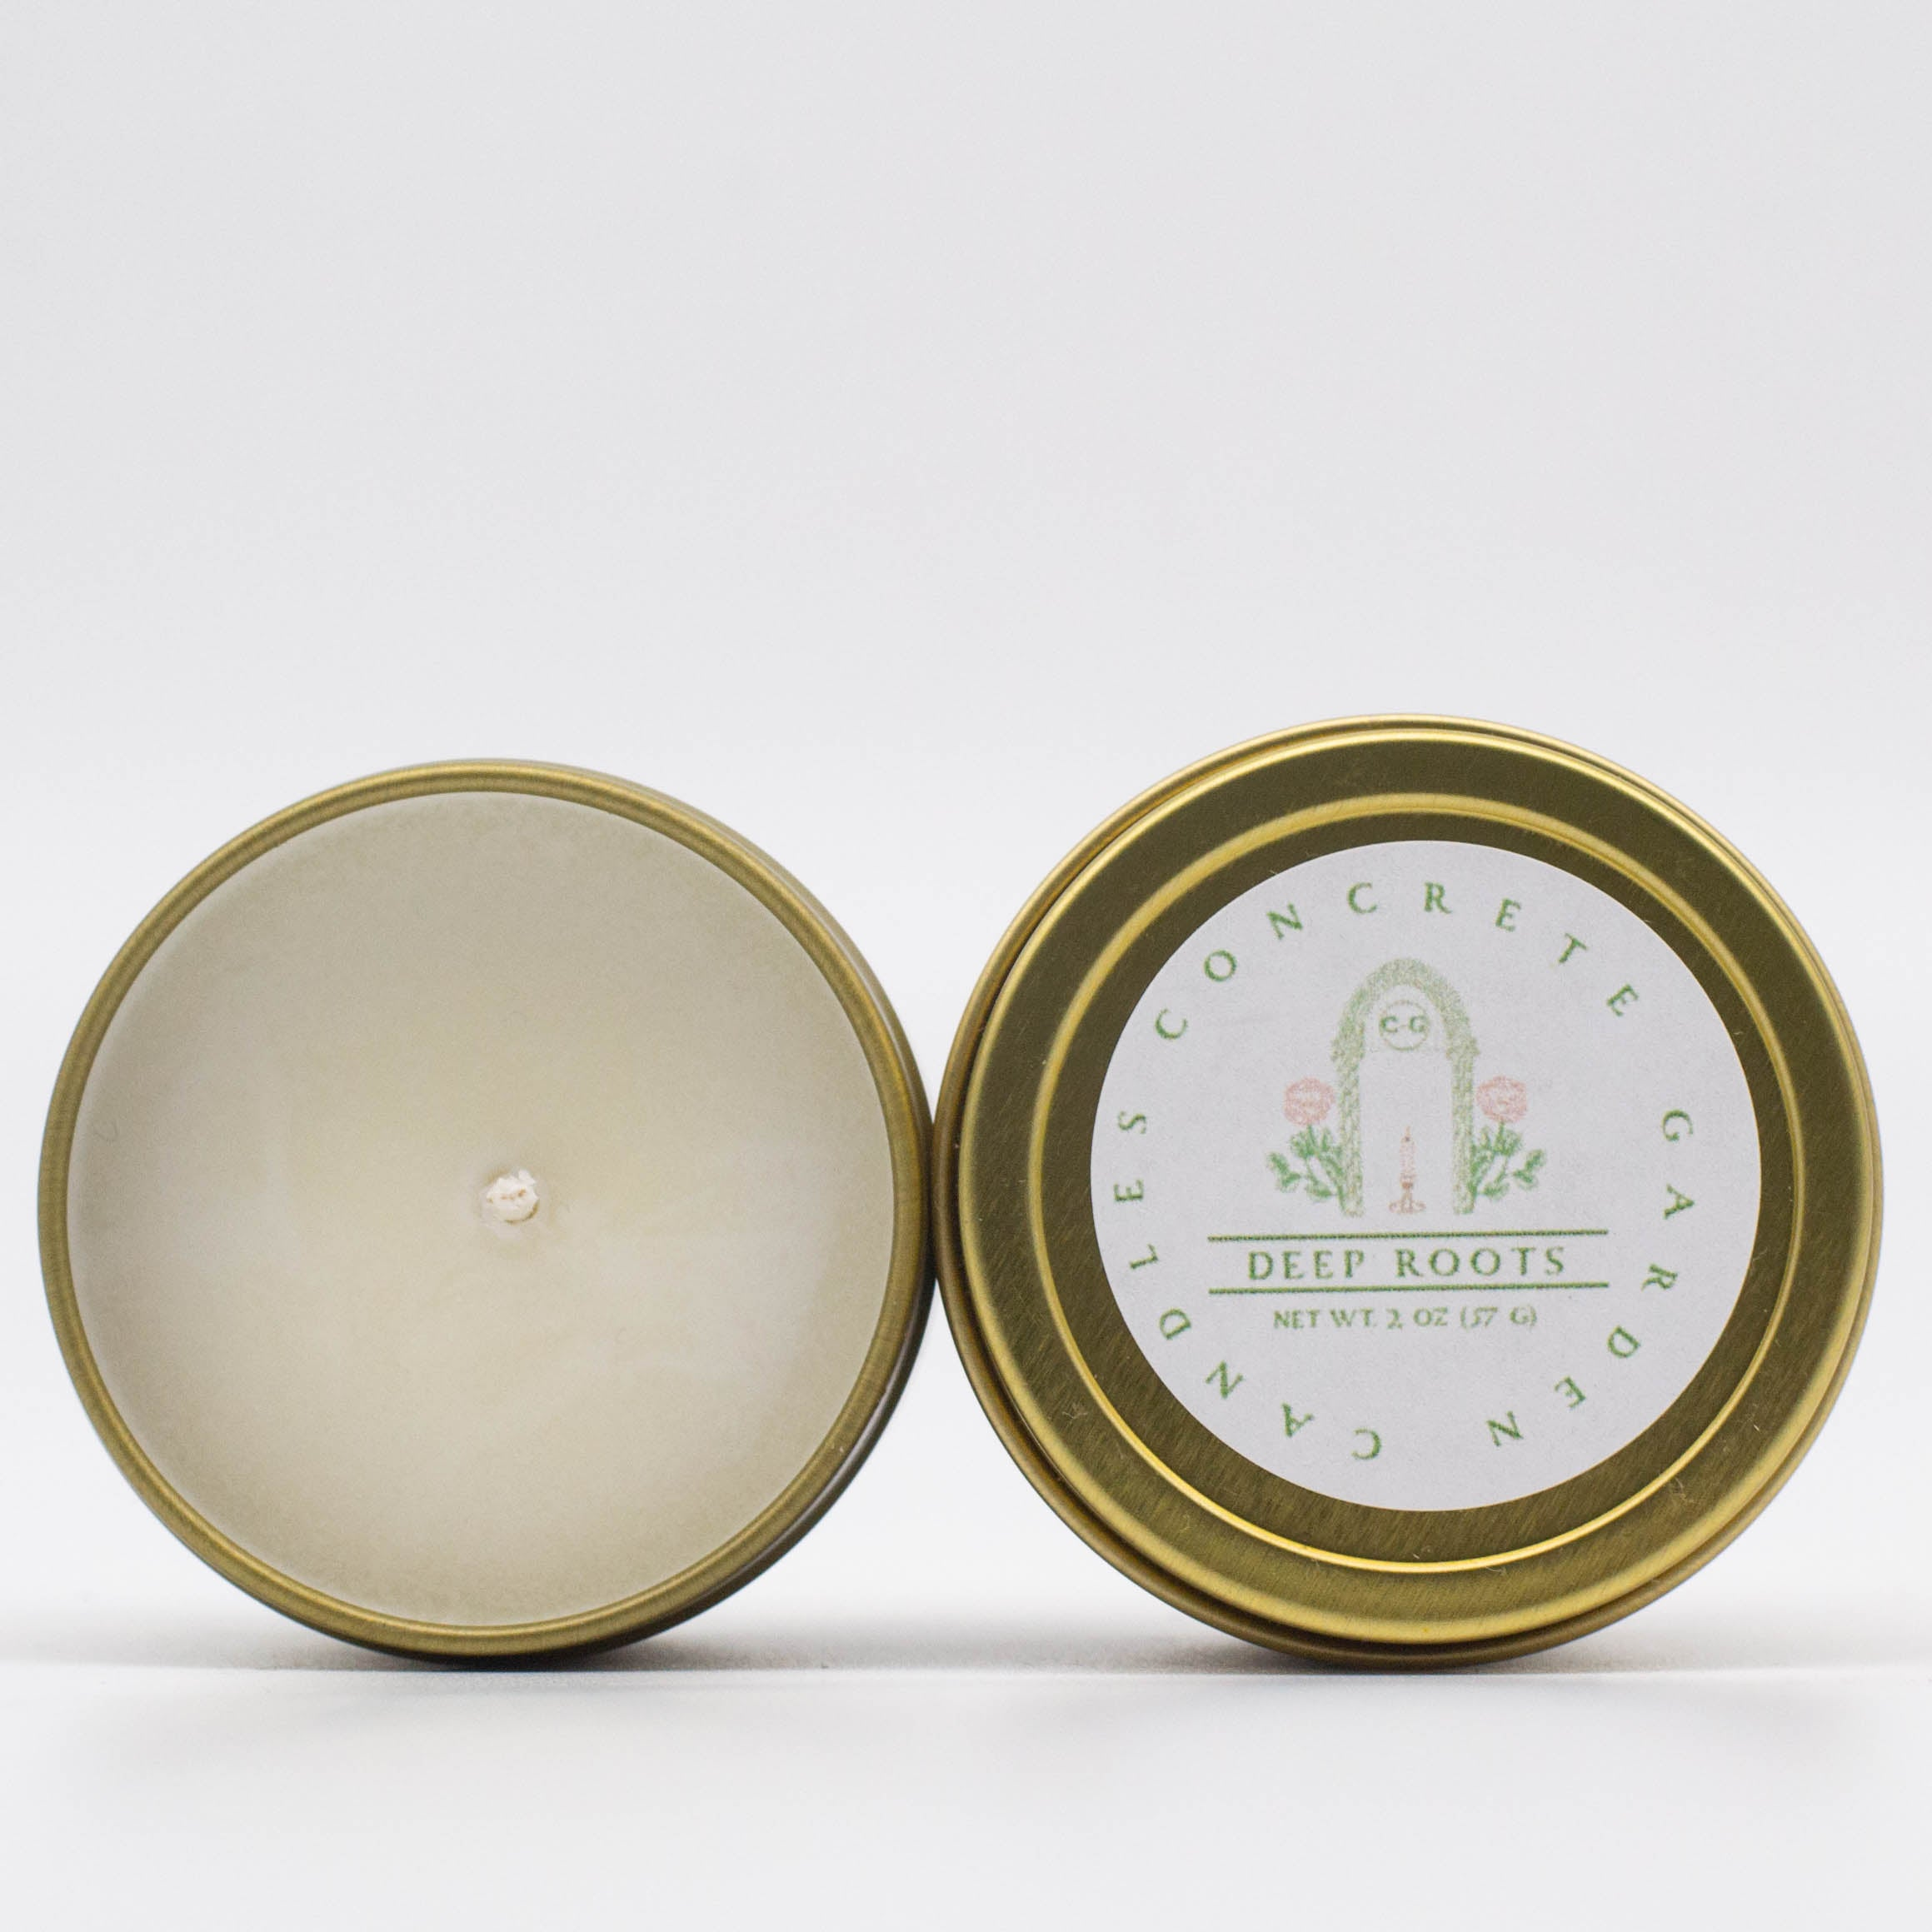 Deep Roots - Ginger and Lemon Soy Candle